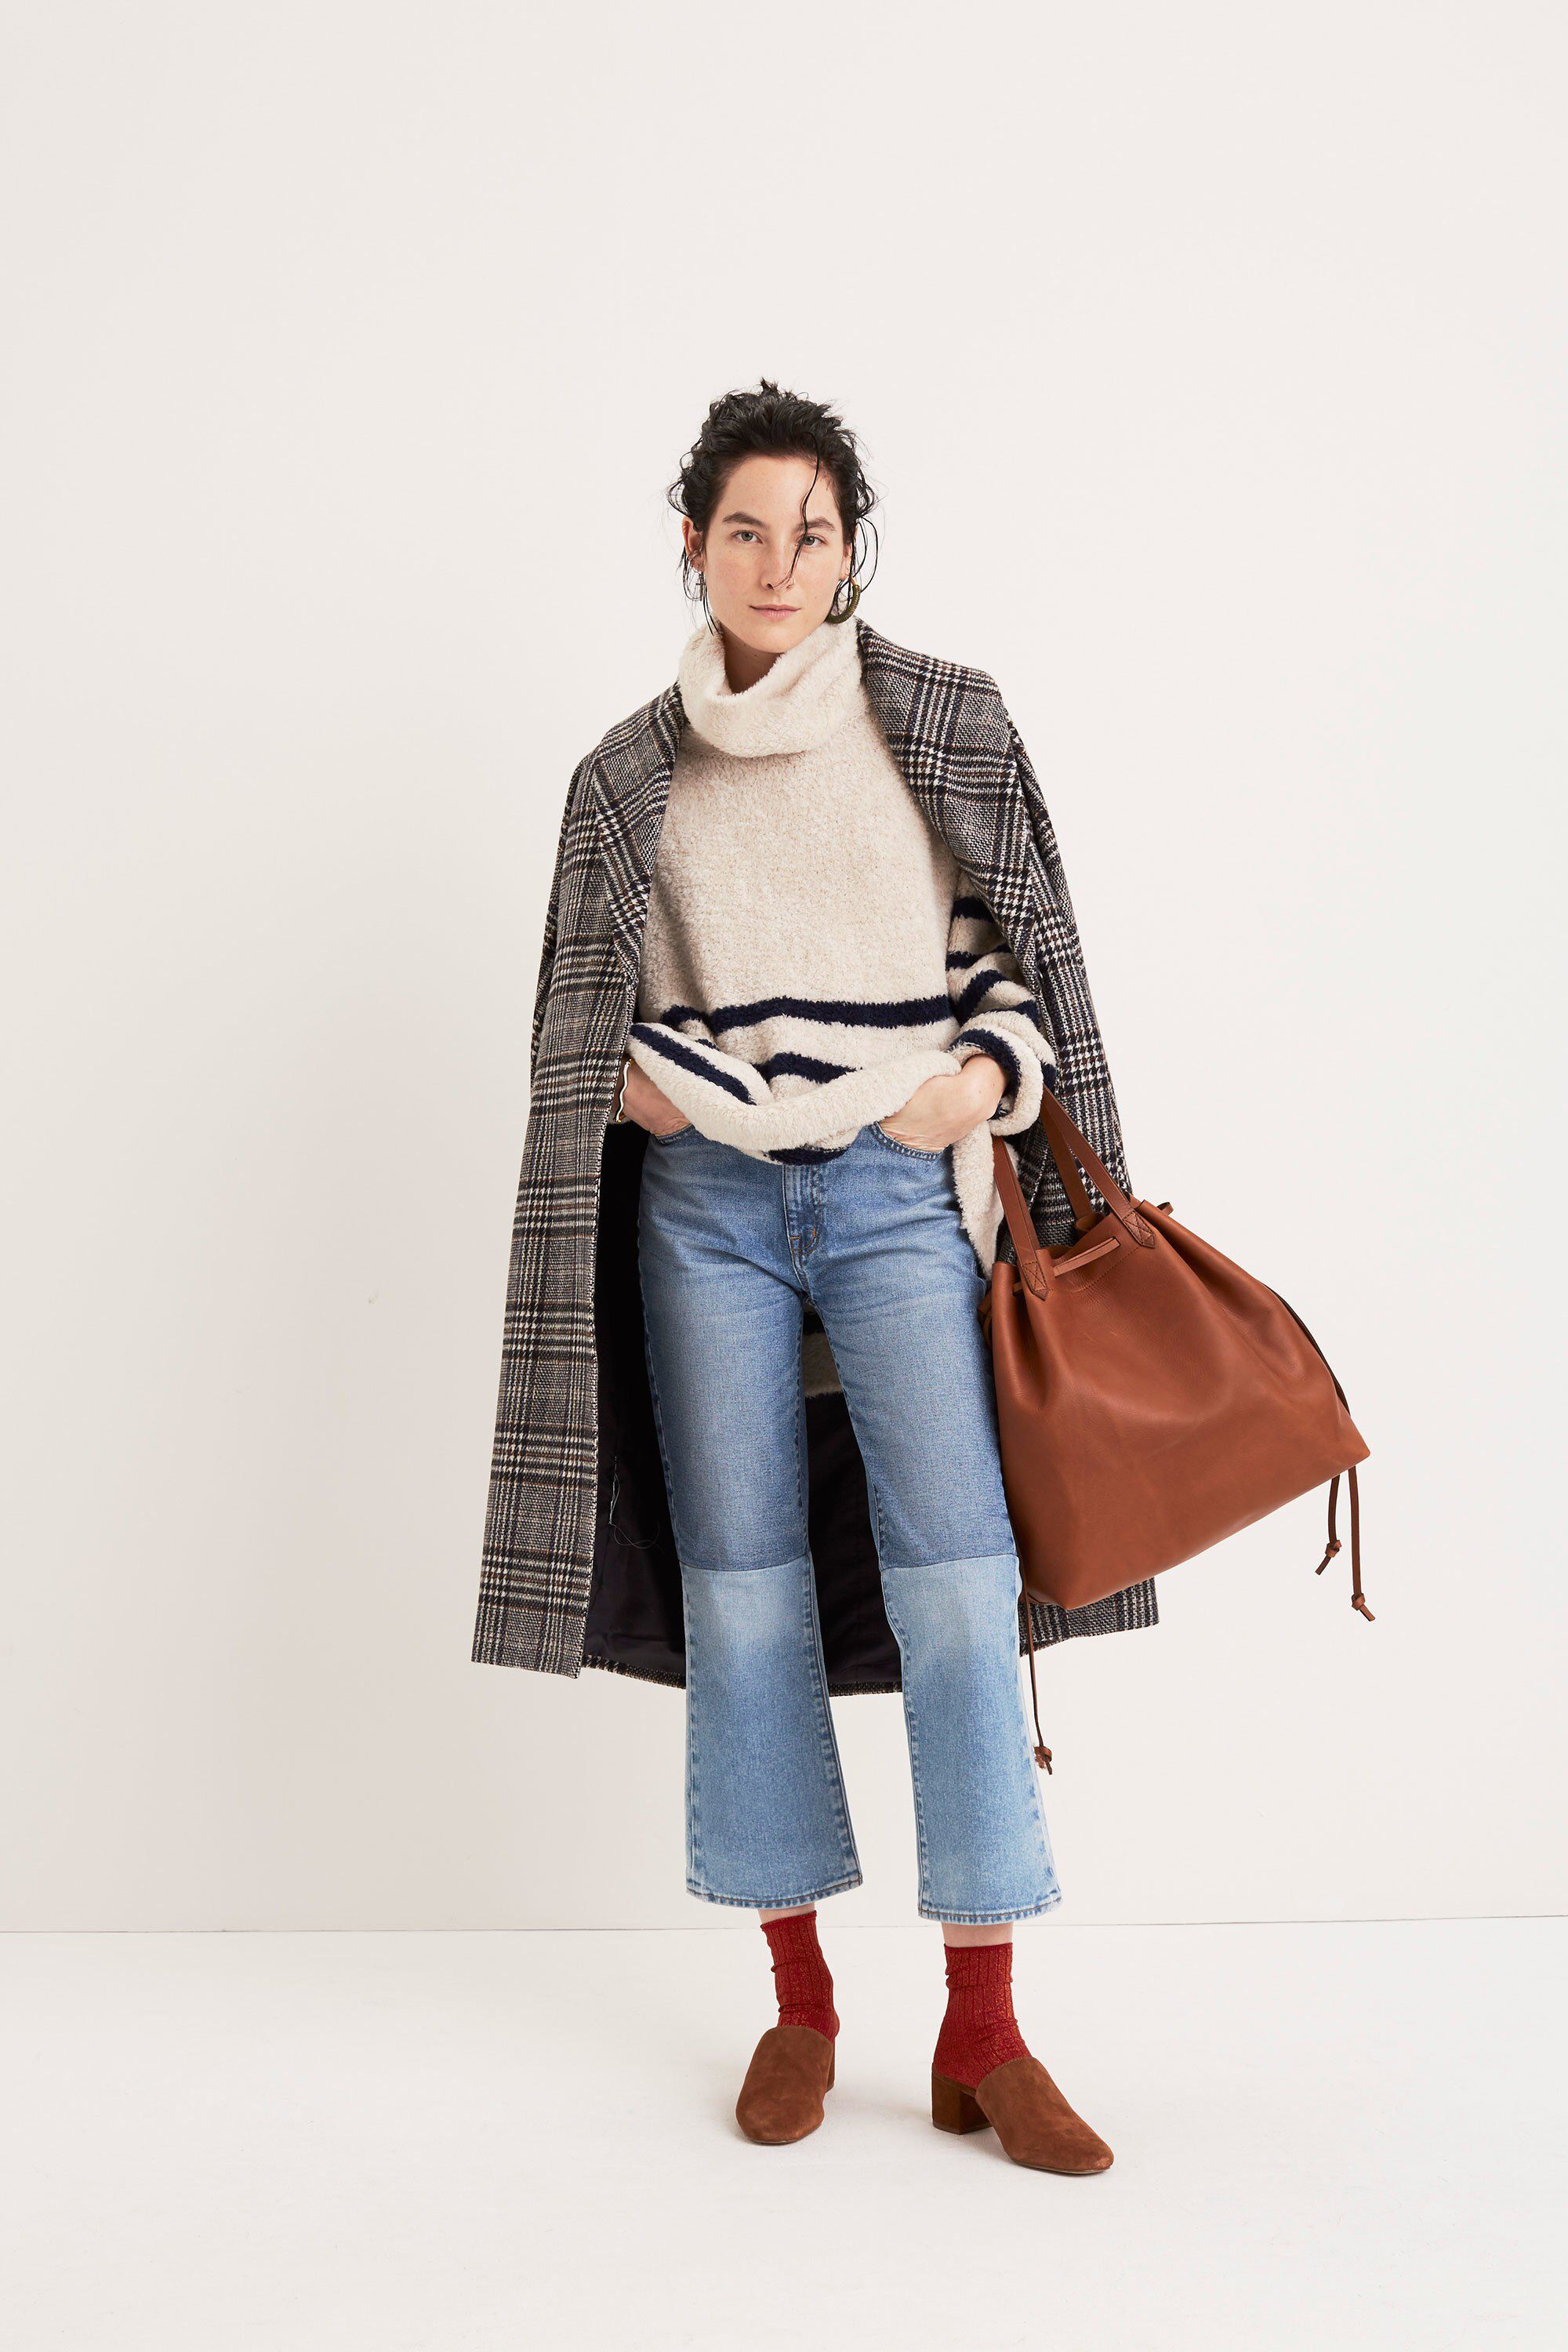 Madewell Fall 2017 Ready-to-Wear Fashion Show Collection